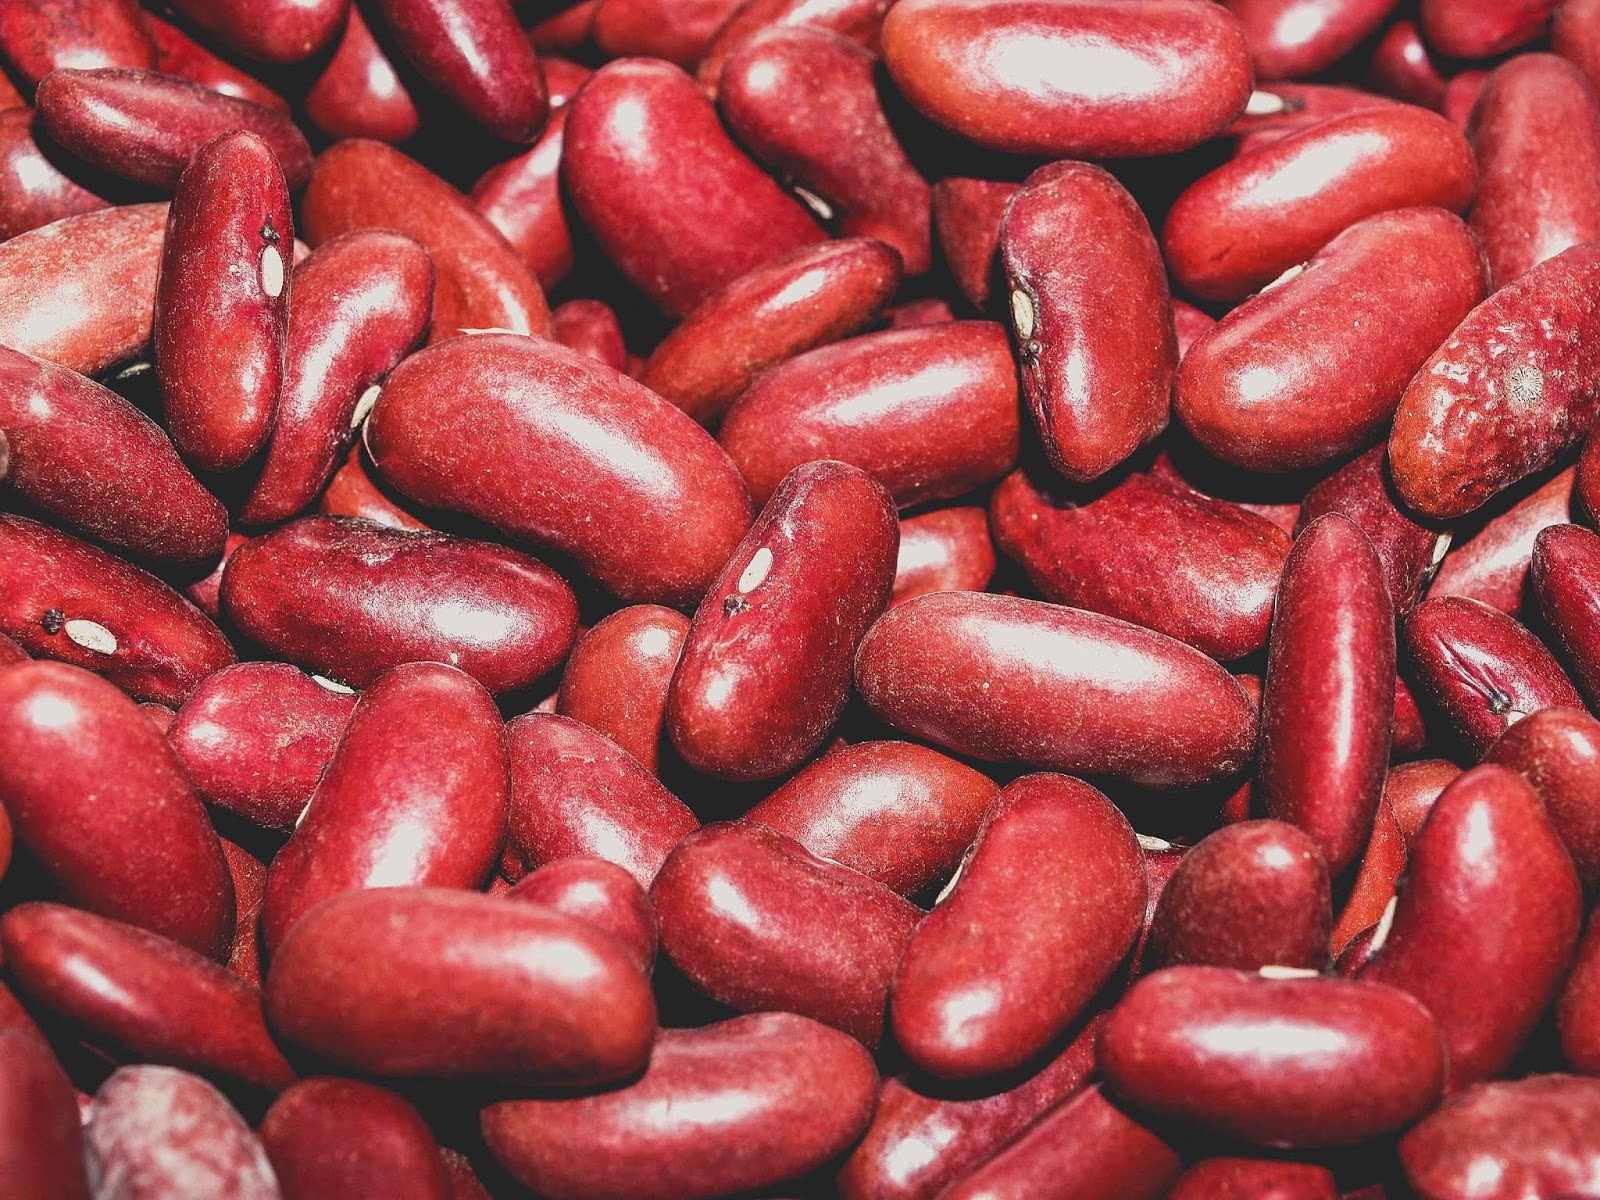 Best Foods to Control Diabetes - Both Type 1 and Type 2 - Beans